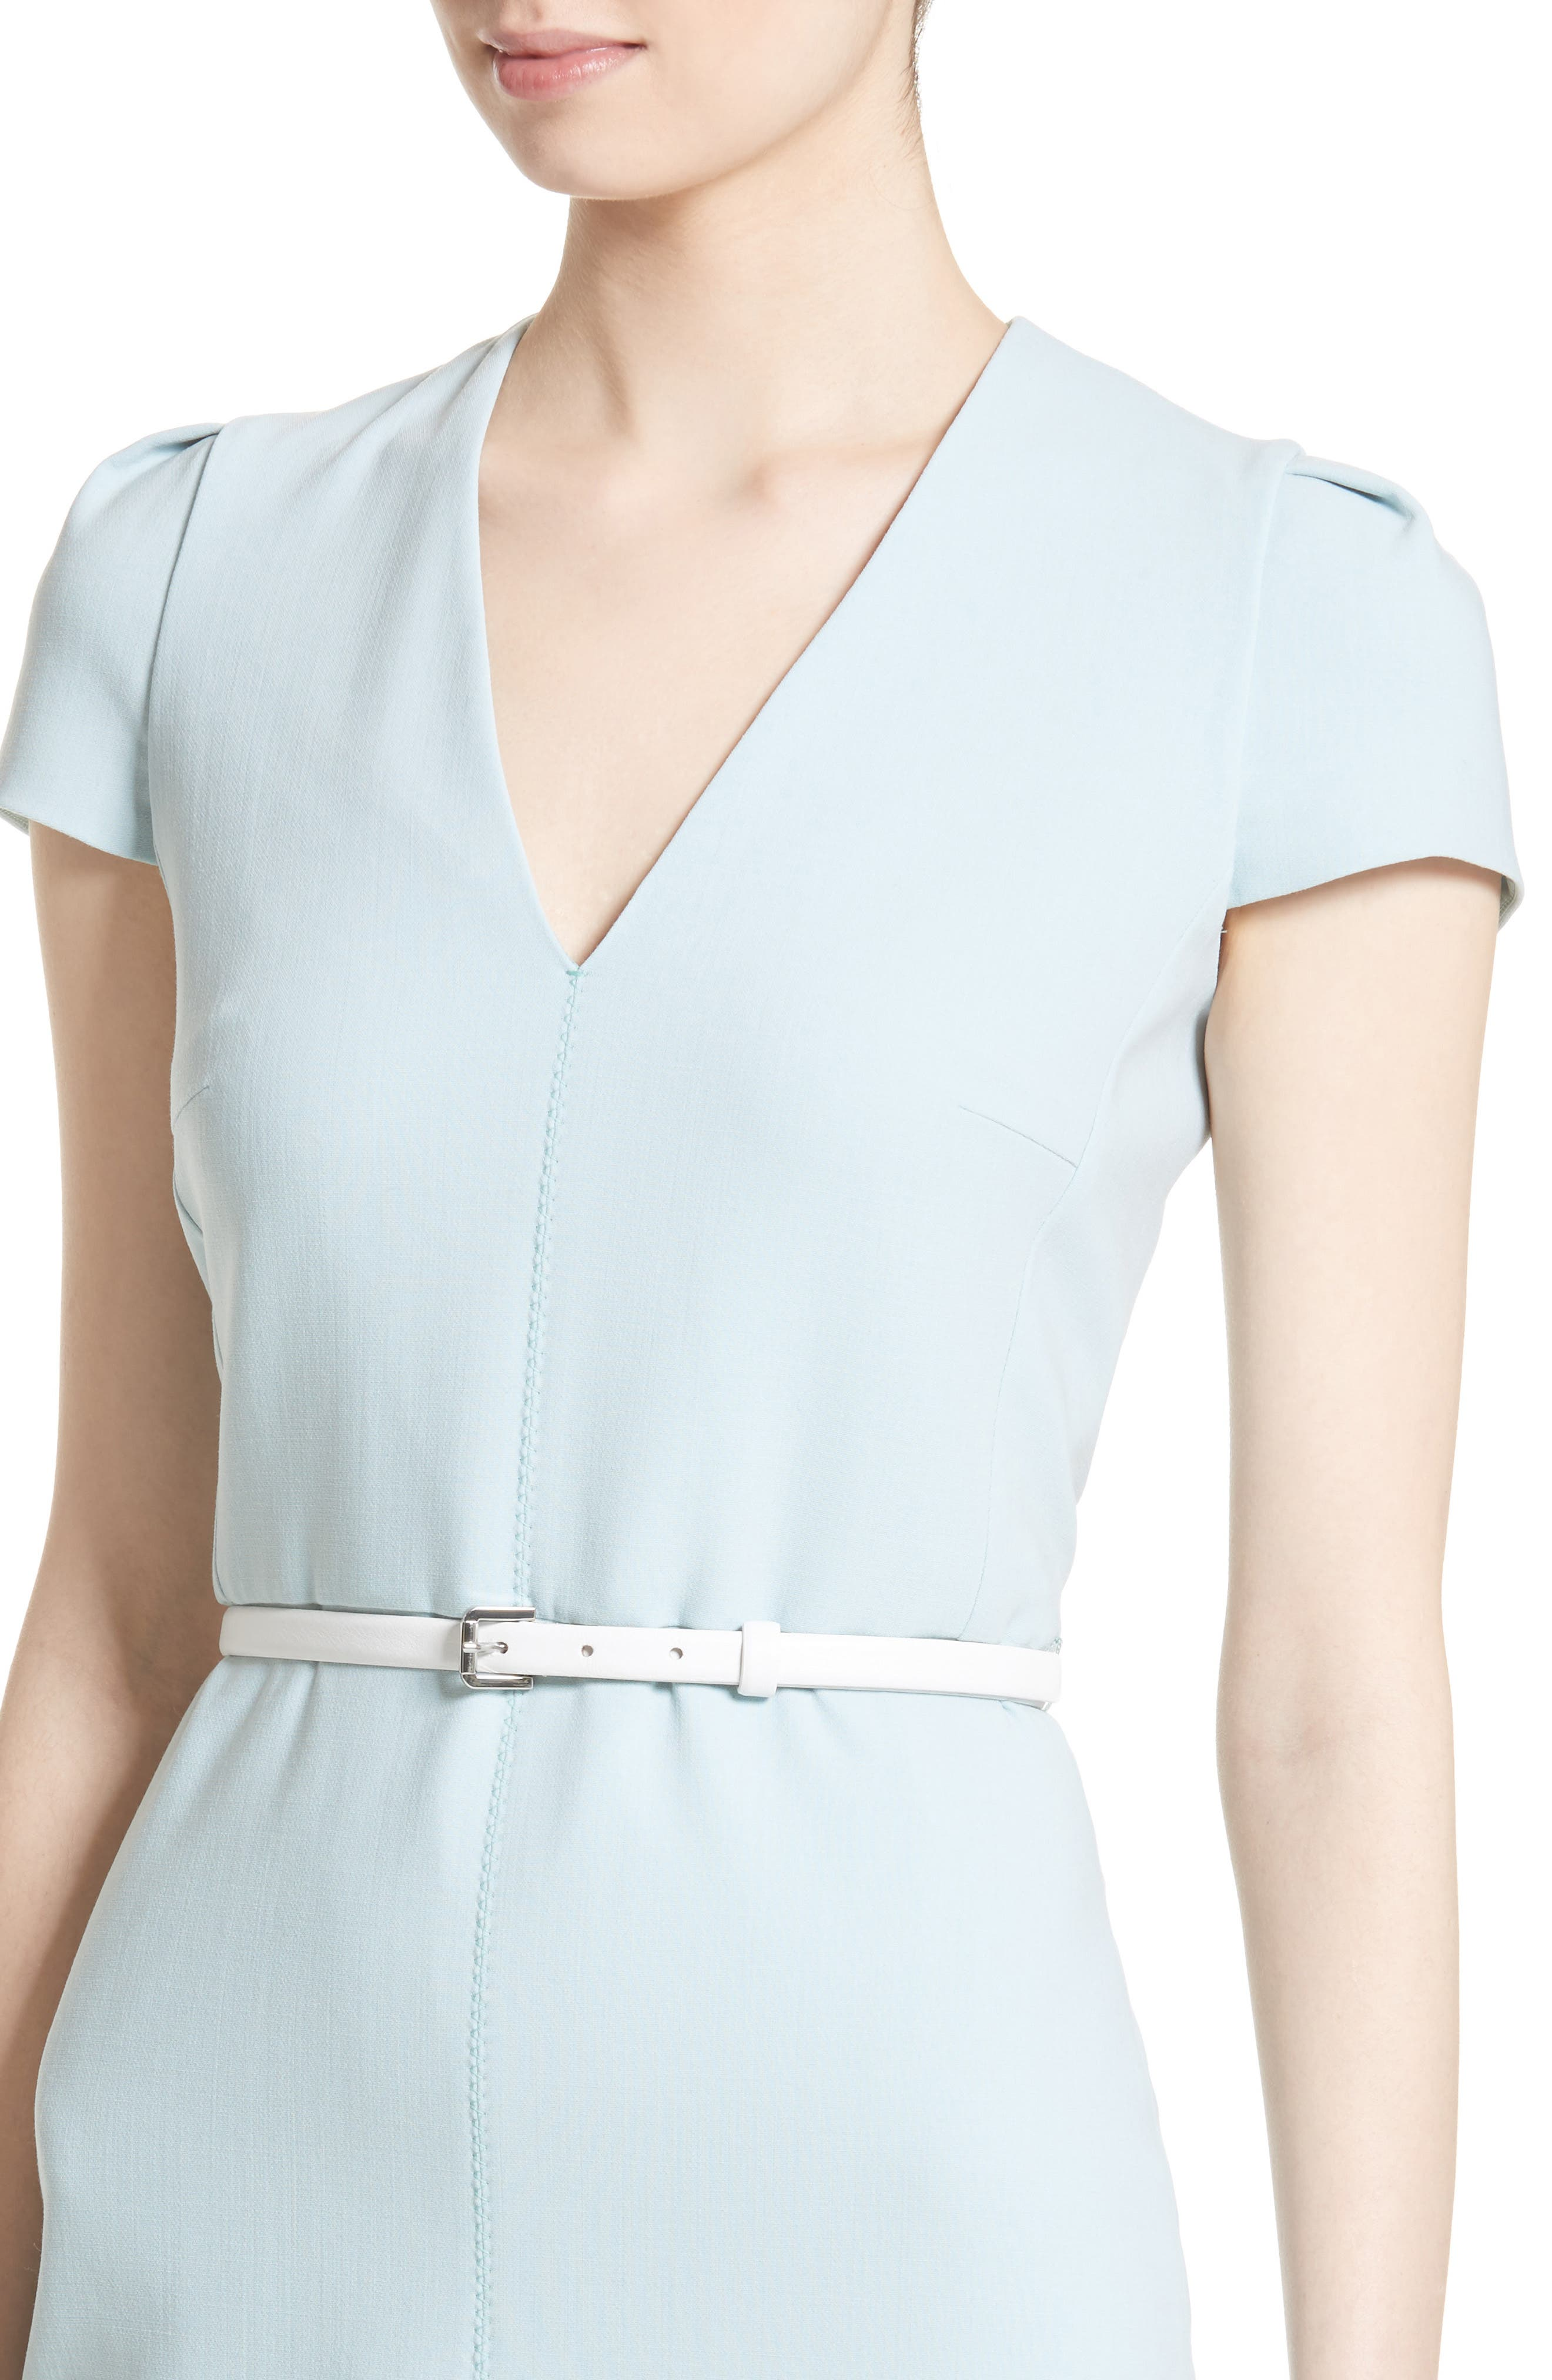 Teorema Belted Sheath Dress,                             Alternate thumbnail 6, color,                             Water